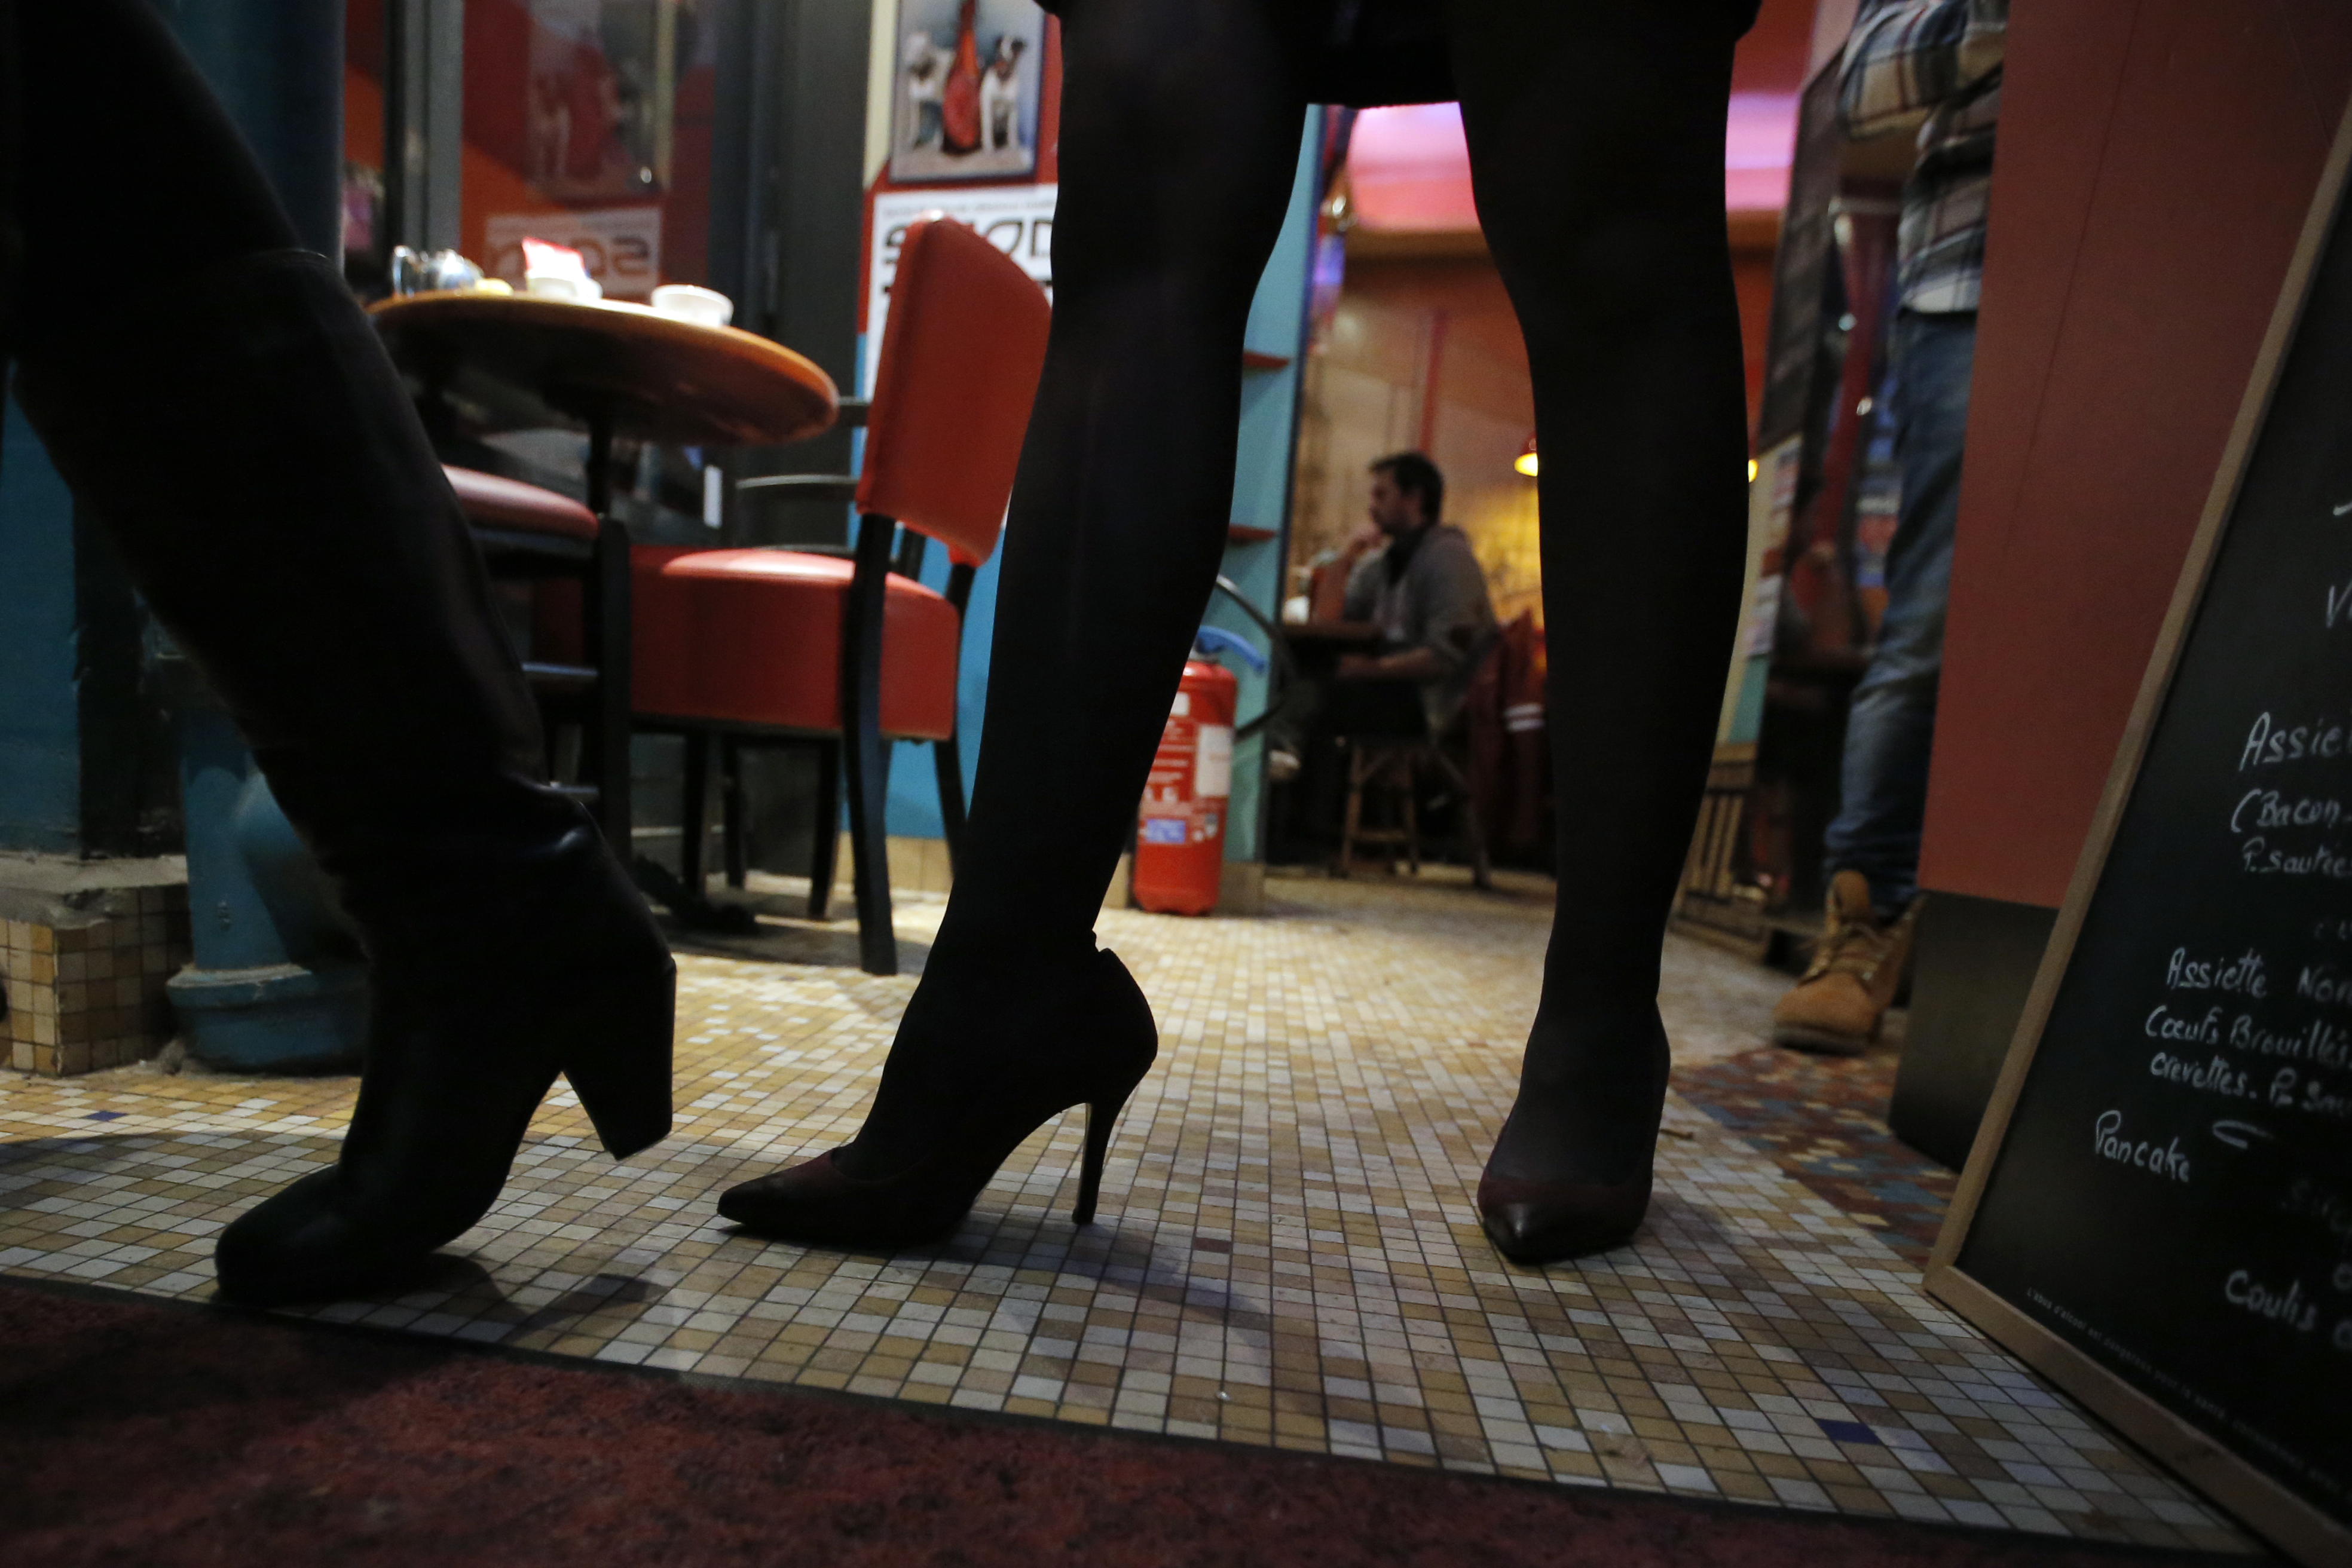 Study details the dangers of wearing high heels